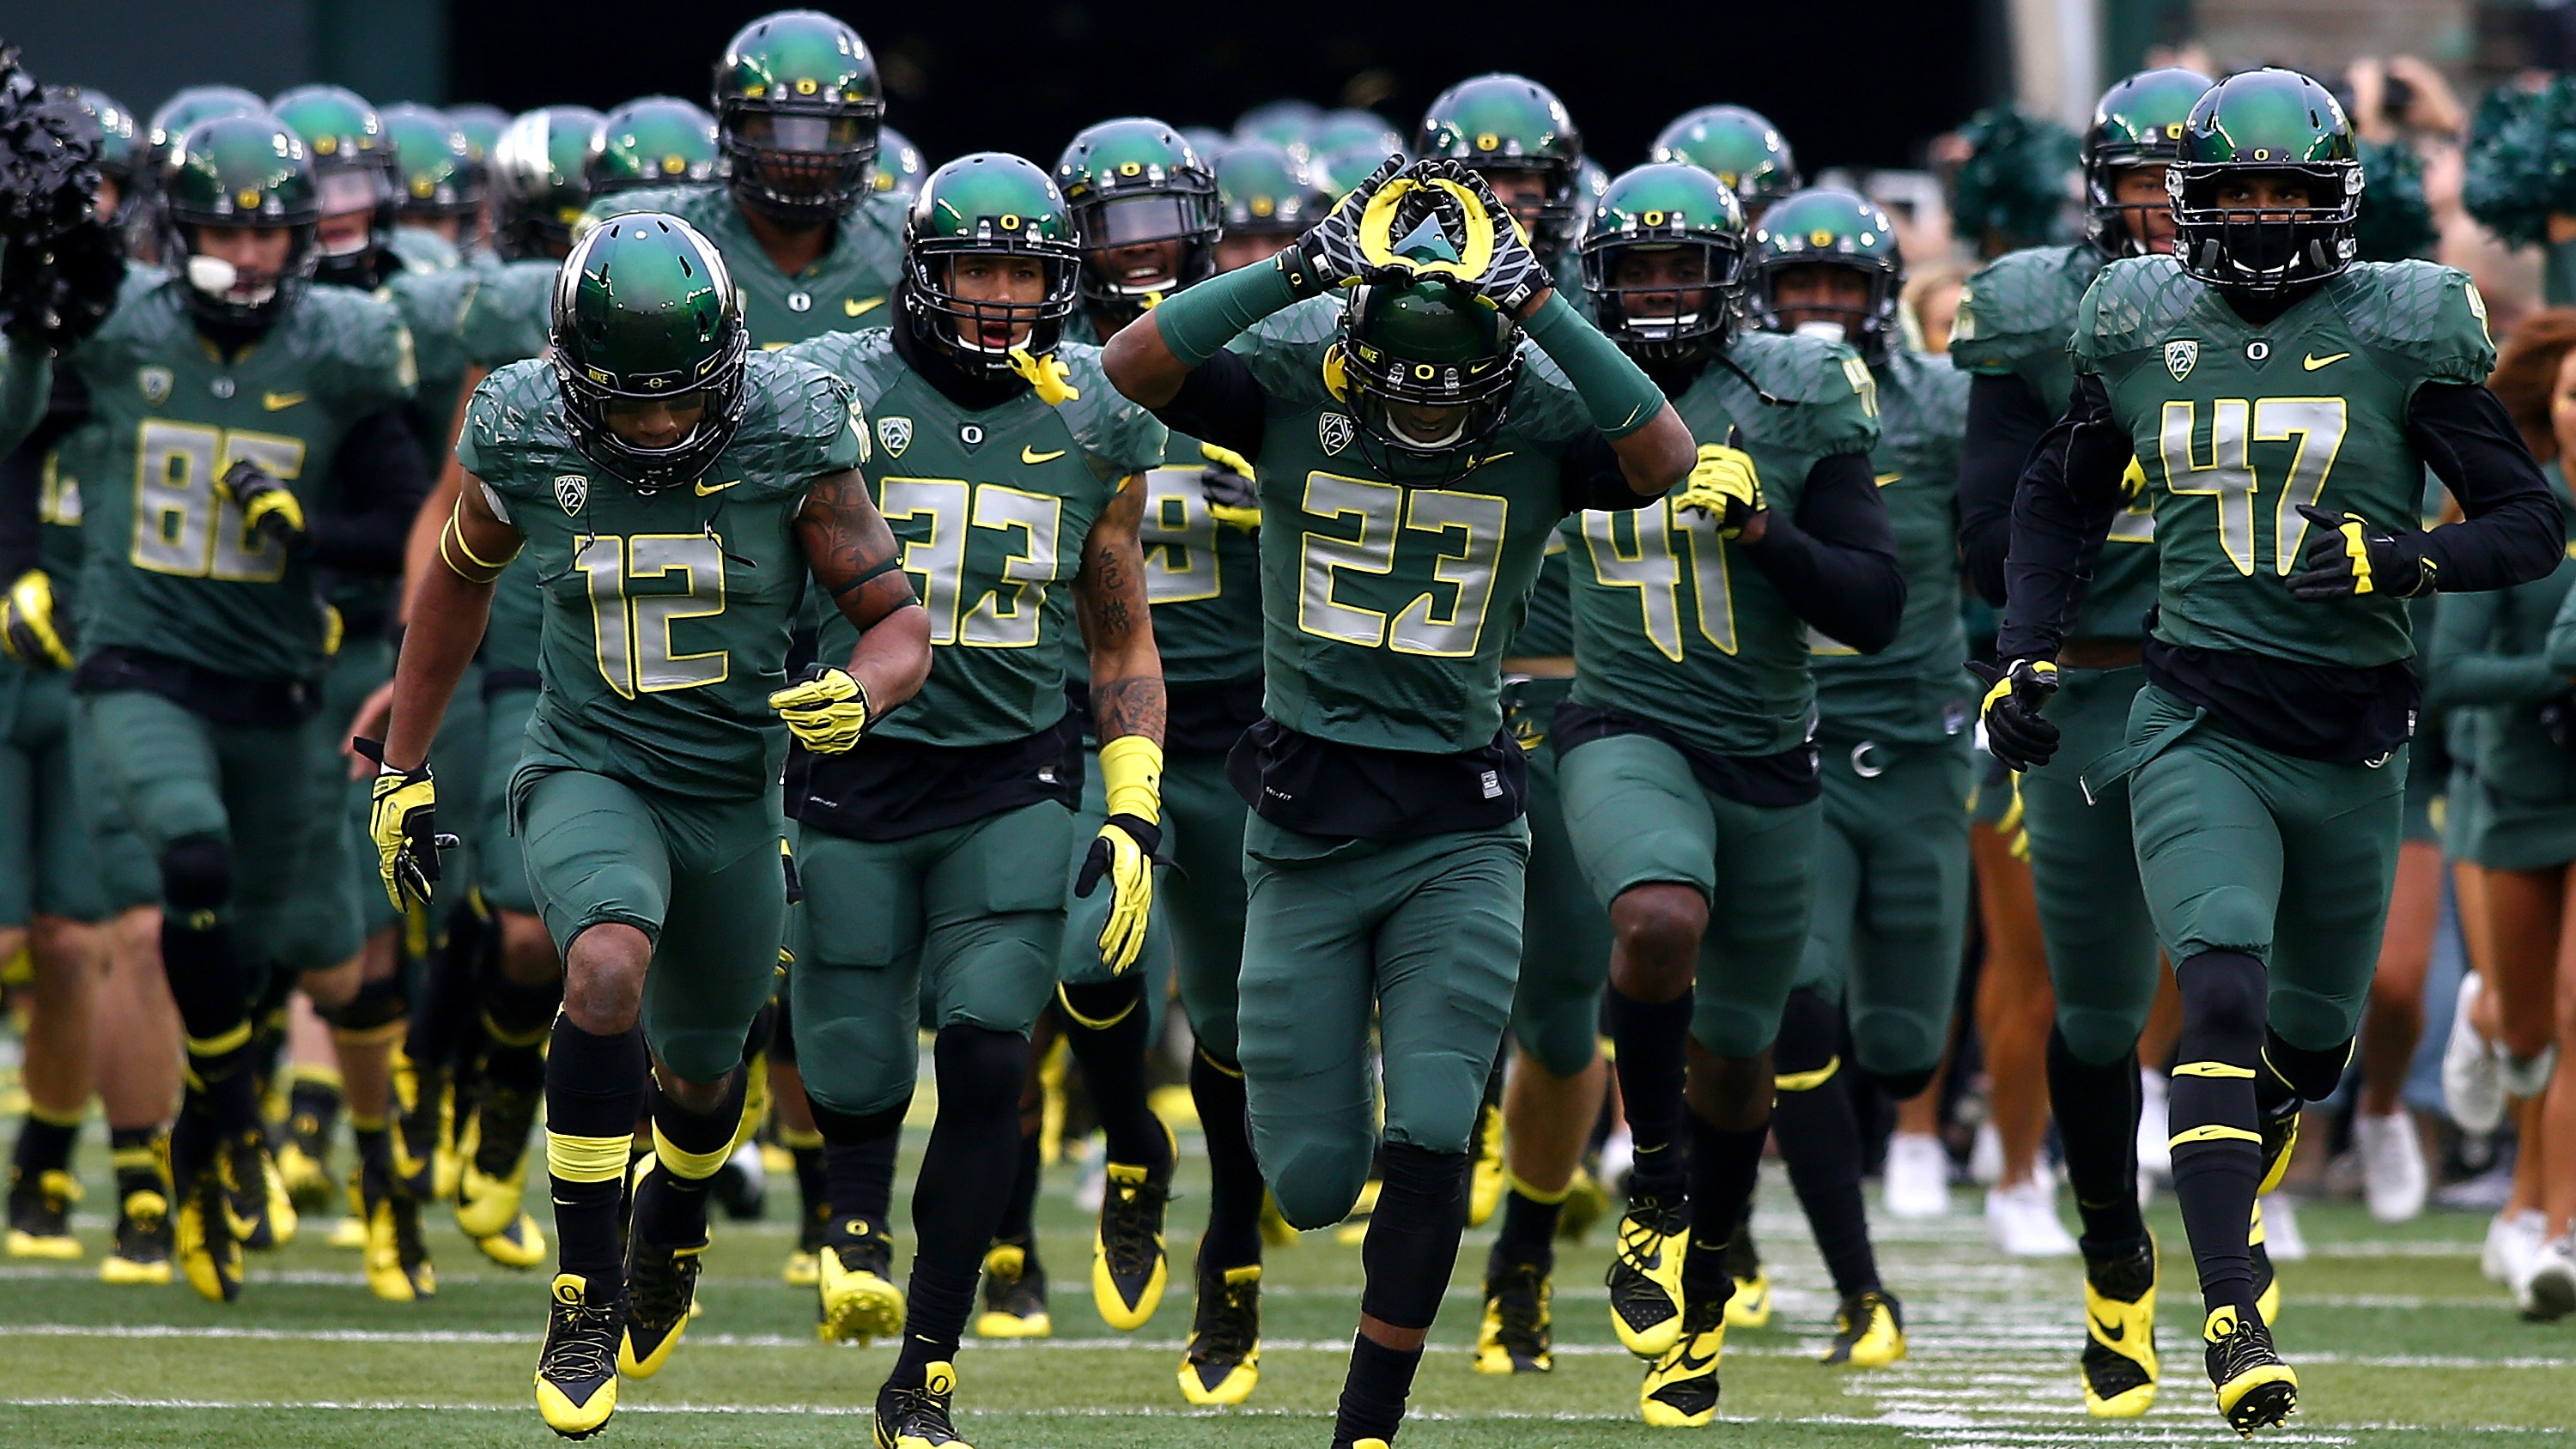 Oregon is known for its many uniform combinations.